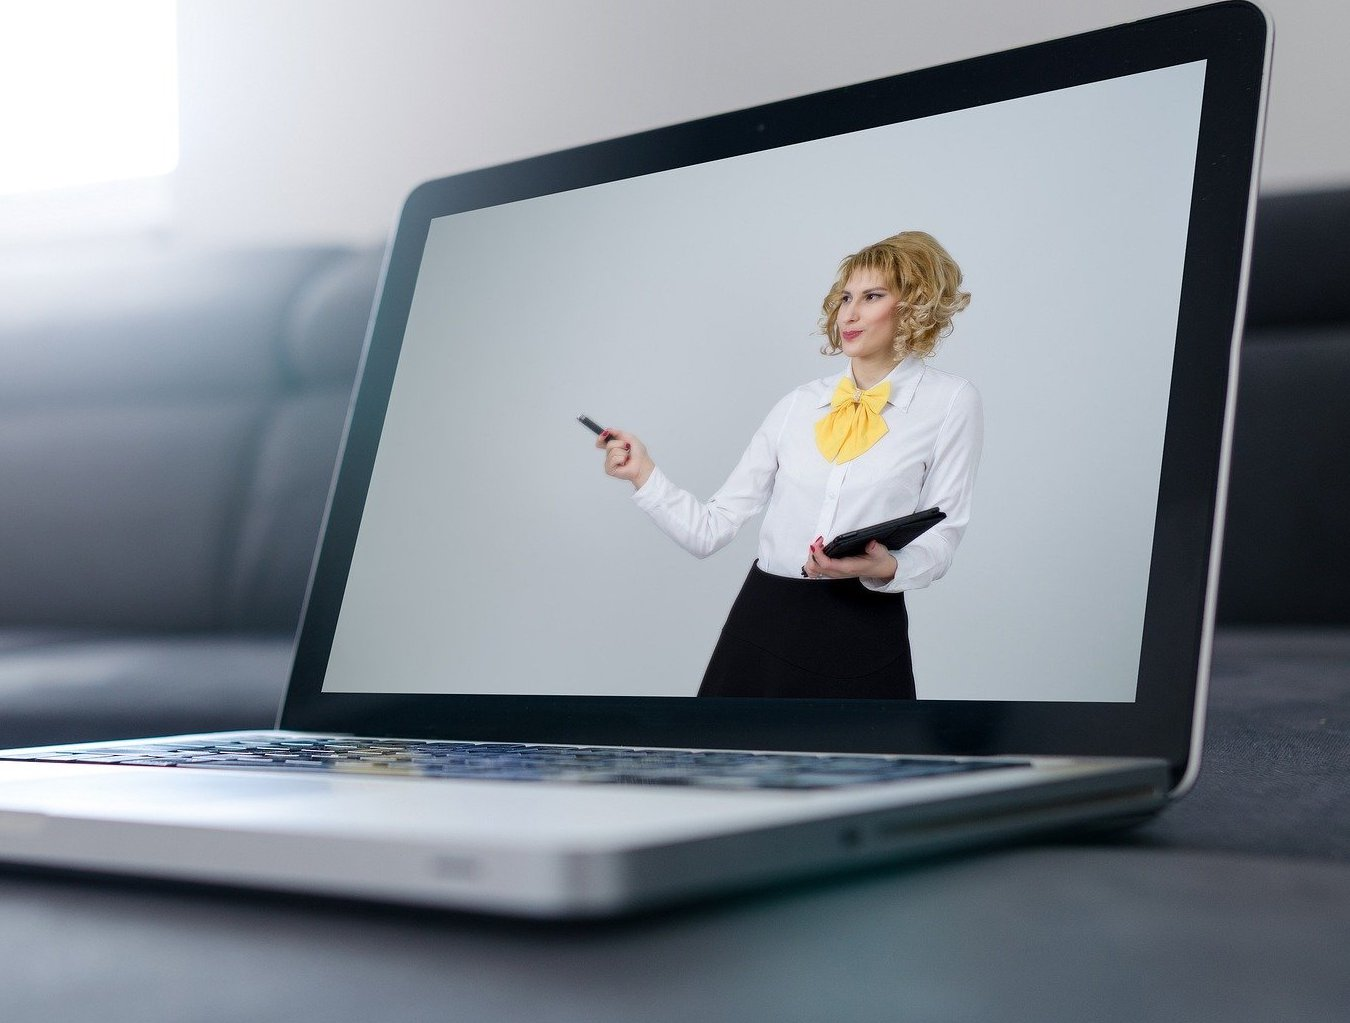 3 Tips for Pitching to Venture Capitalists Remotely